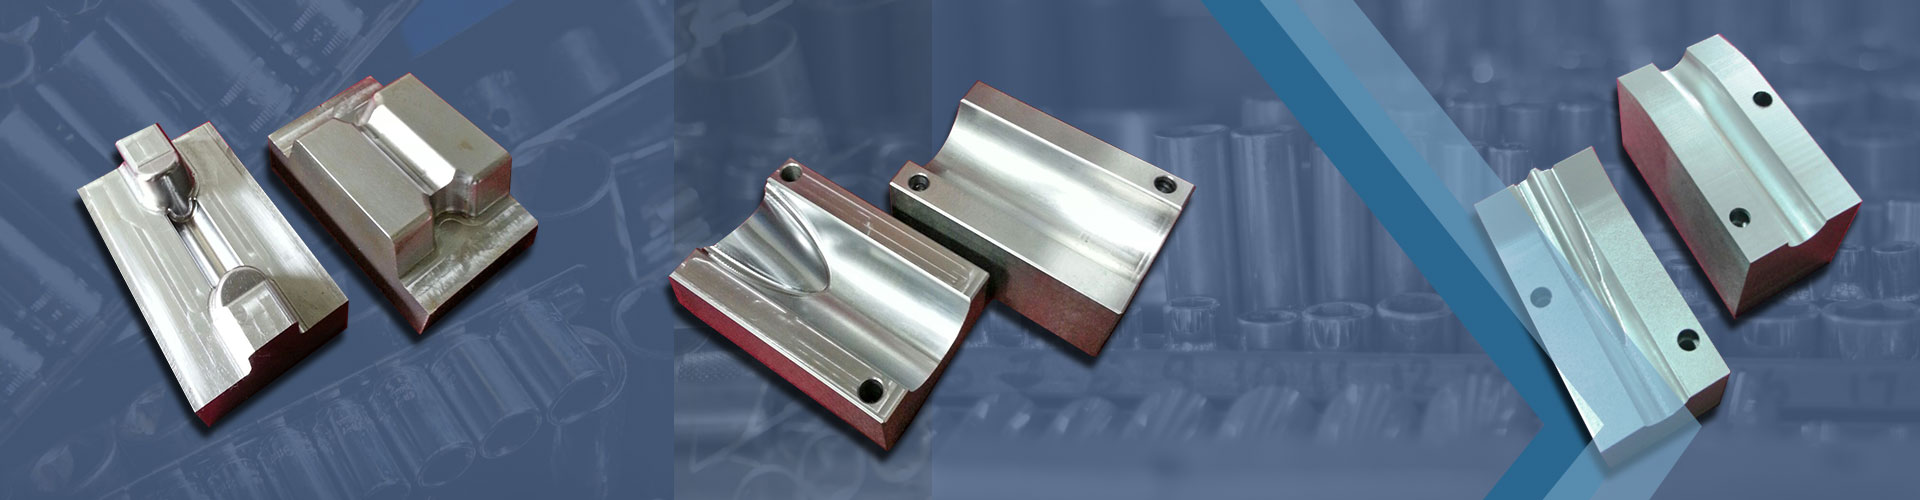 PLASTIC INJECTION MOLDS, DIE CASTING DIES AND SHEET METAL PRESS TOOLS